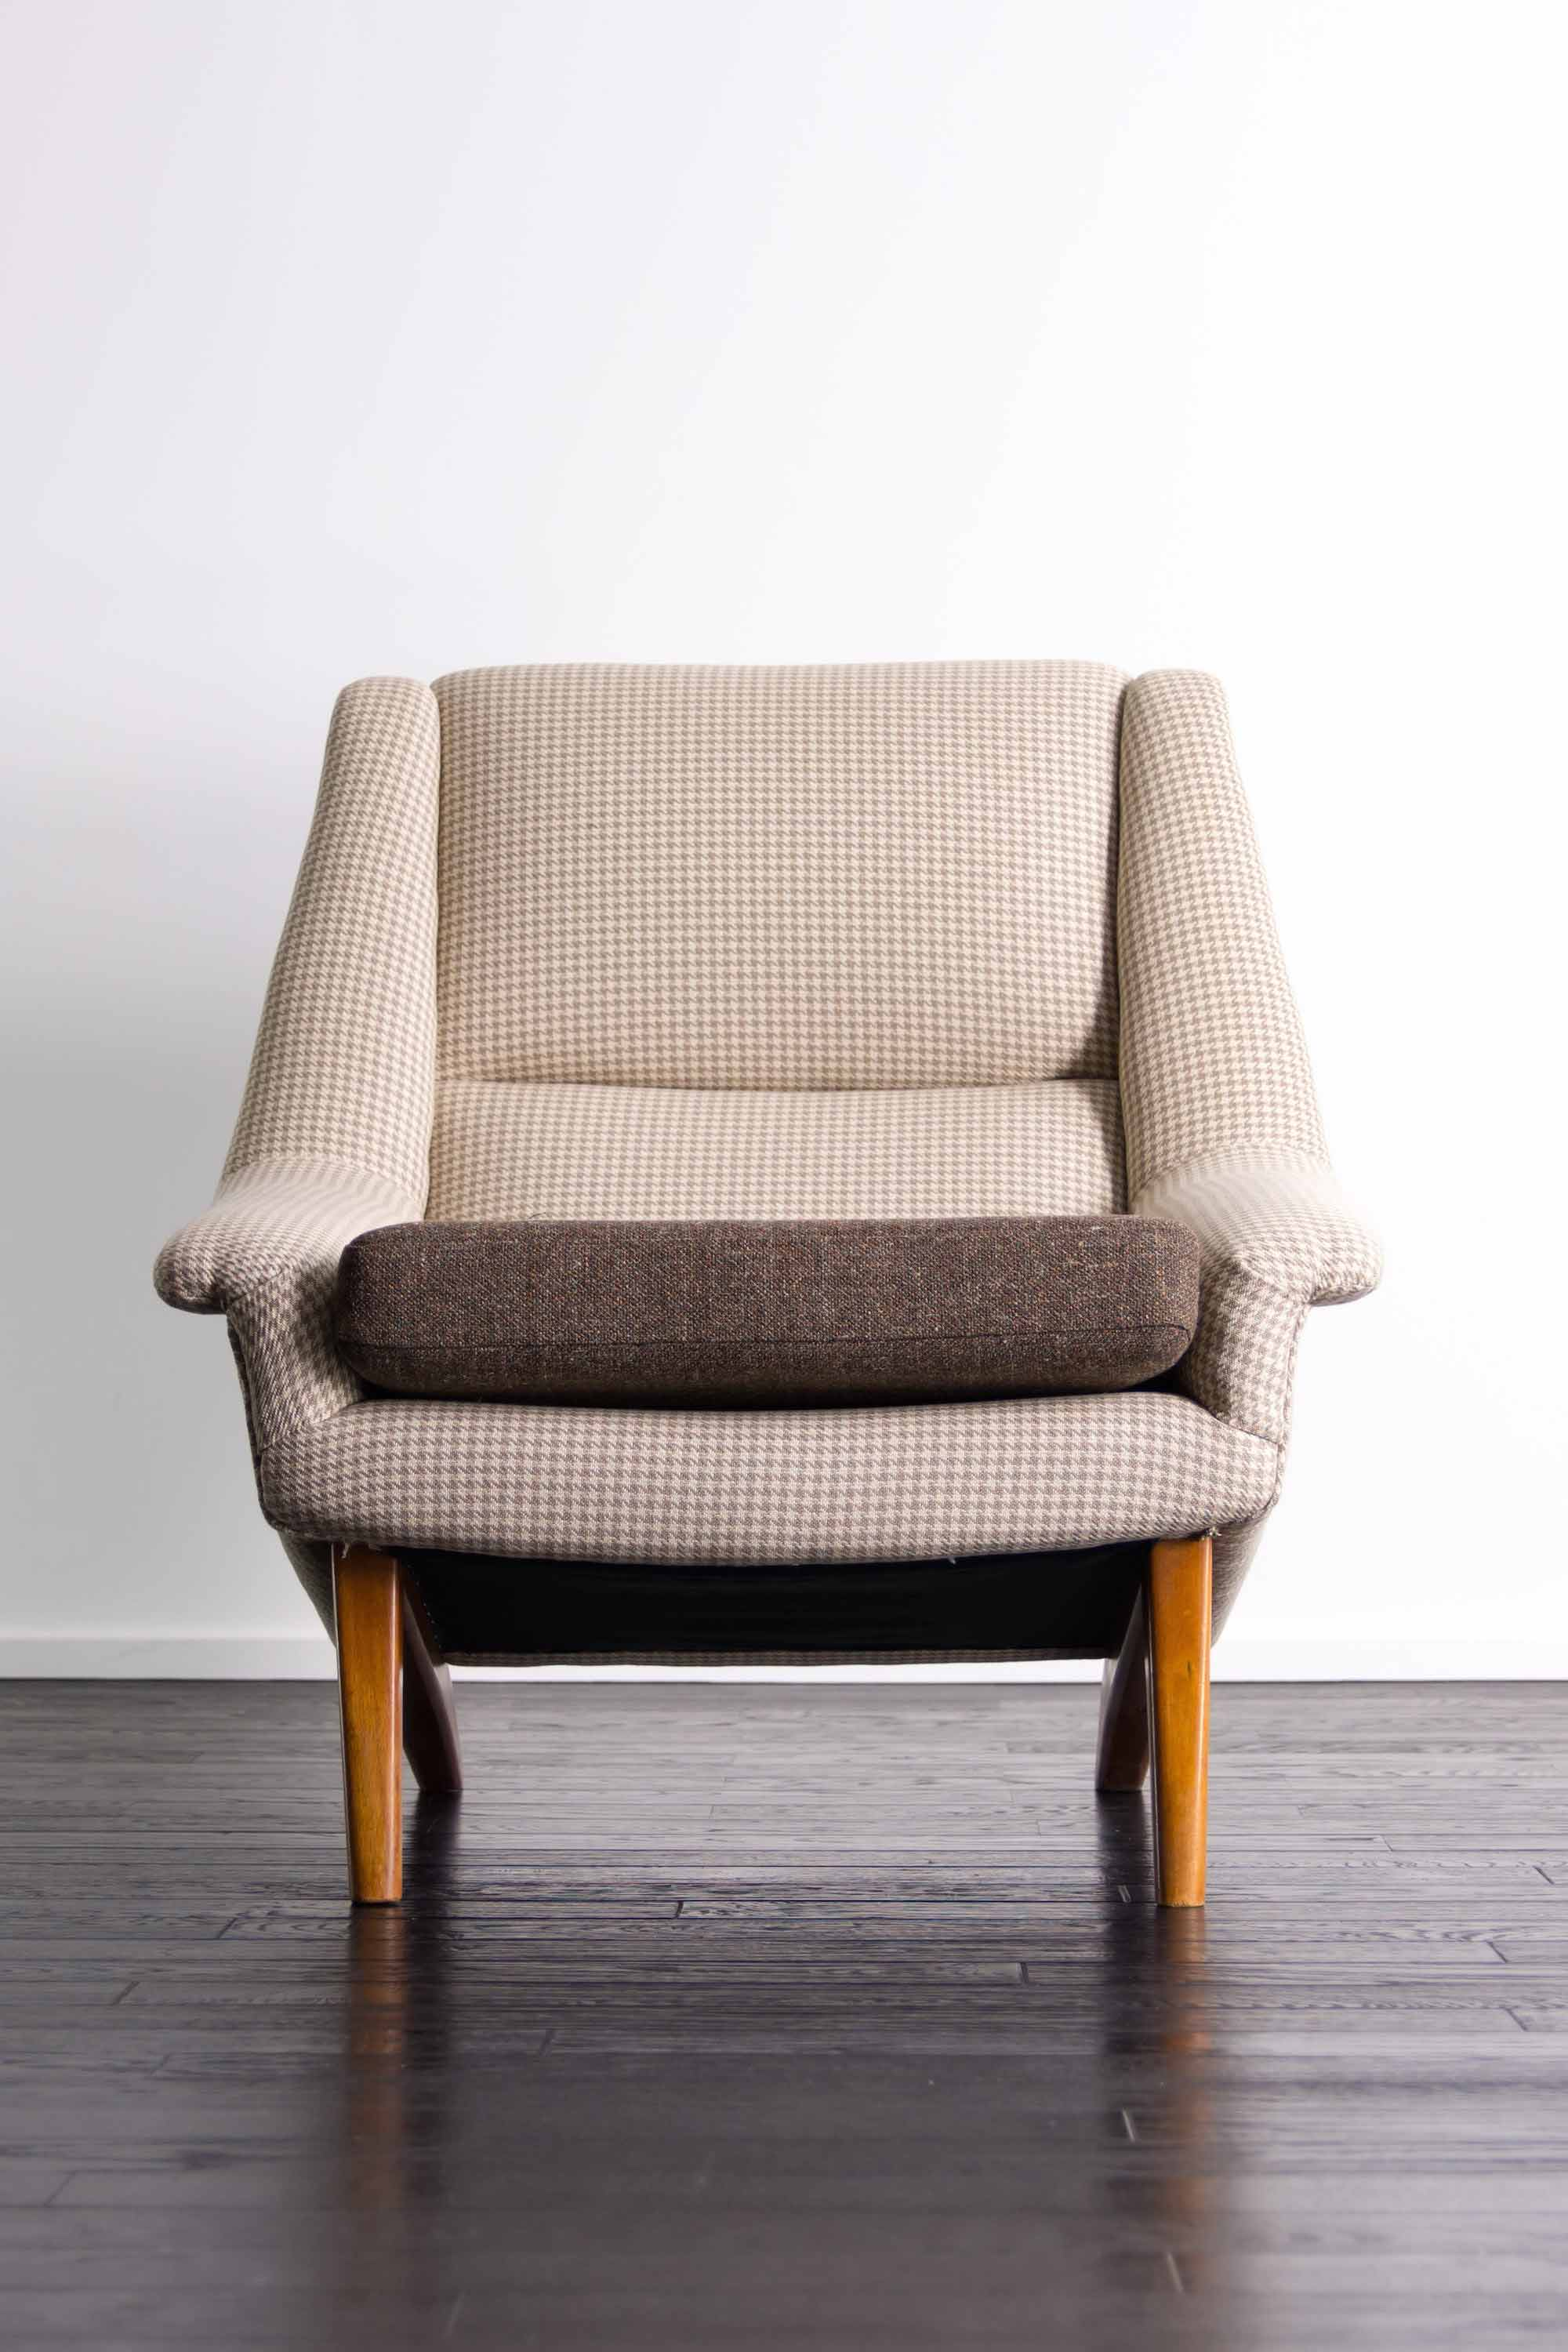 #4410 High back Chair by Folke Ohlsson